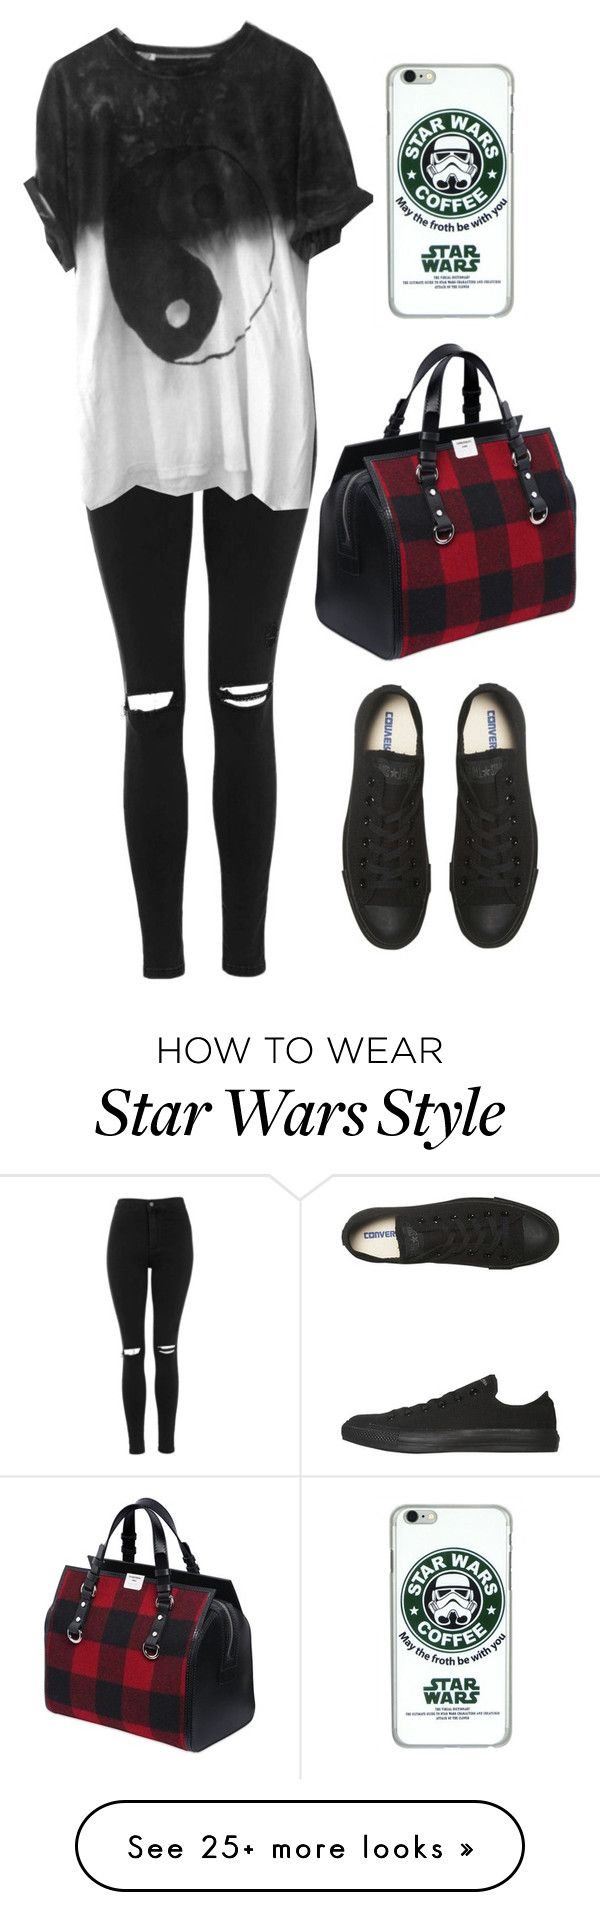 """""""#314"""" by uccelli on Polyvore featuring Topshop, Dsquared2, Converse, women's clothing, women, female, woman, misses and juniors by Veroka1730on pinterest"""